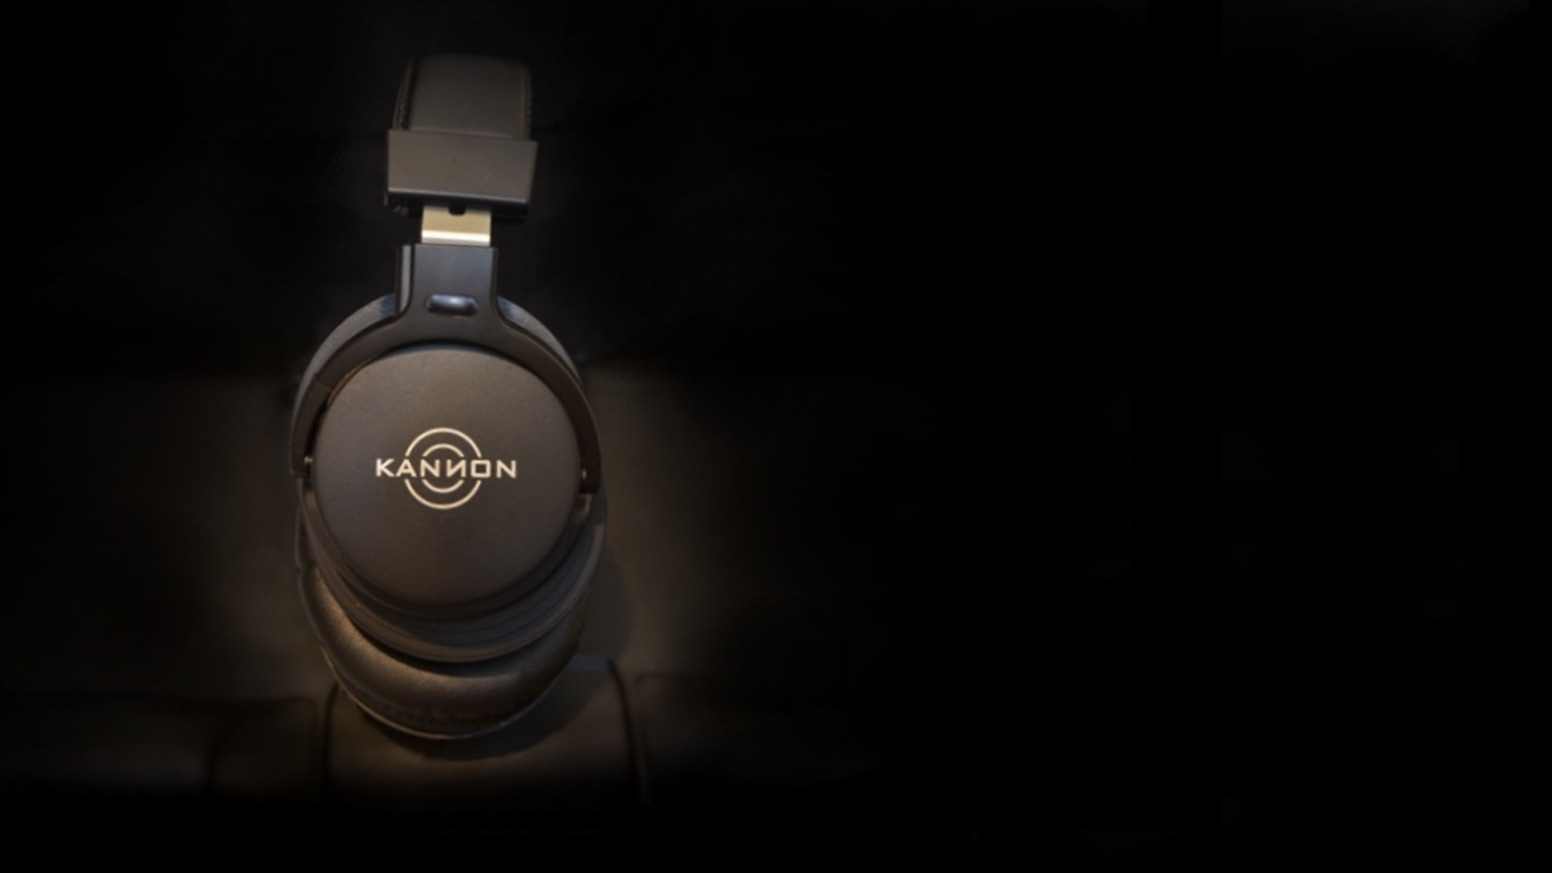 Audiophile sound and  live-music feeling. Tactile drivers go sub-hearing, speed gaming reactions, intensify movies.